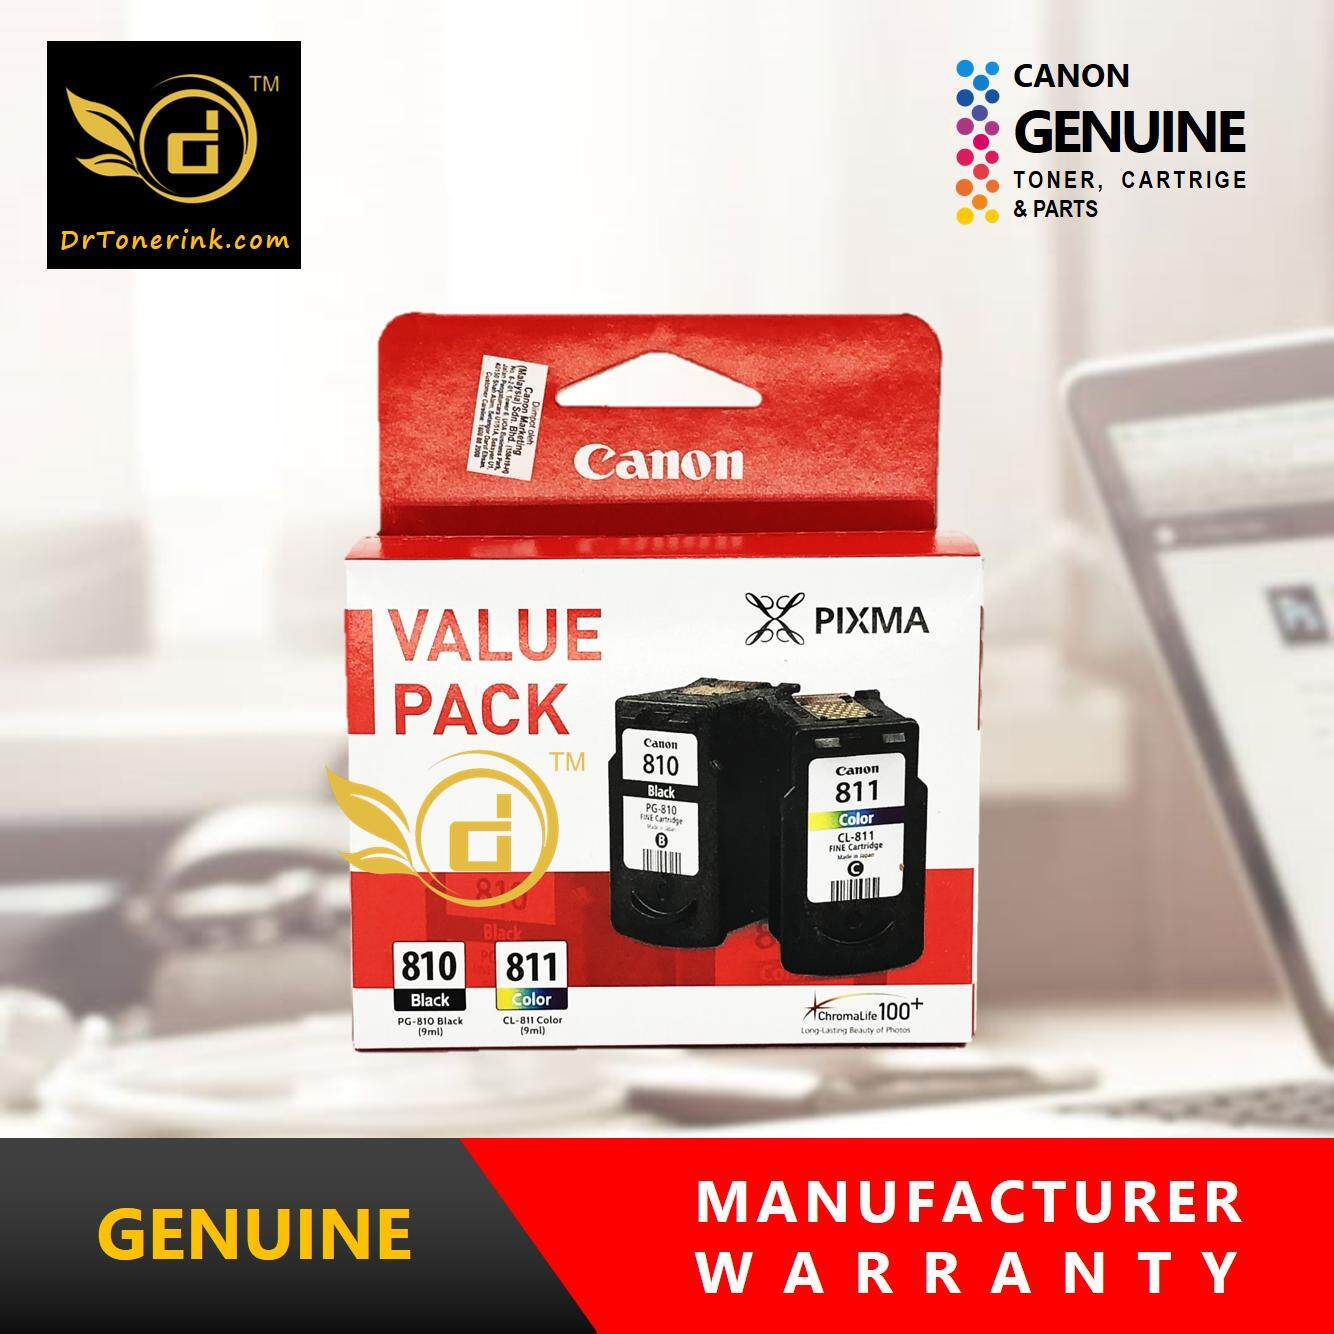 Canon Inkjet Printer Inks For The Best Prices In Malaysia Tinta 790 Cyan Ori G1000 G2000 G3000 Genuine Original Ink Value Pack Pg 810 9ml Cl 811